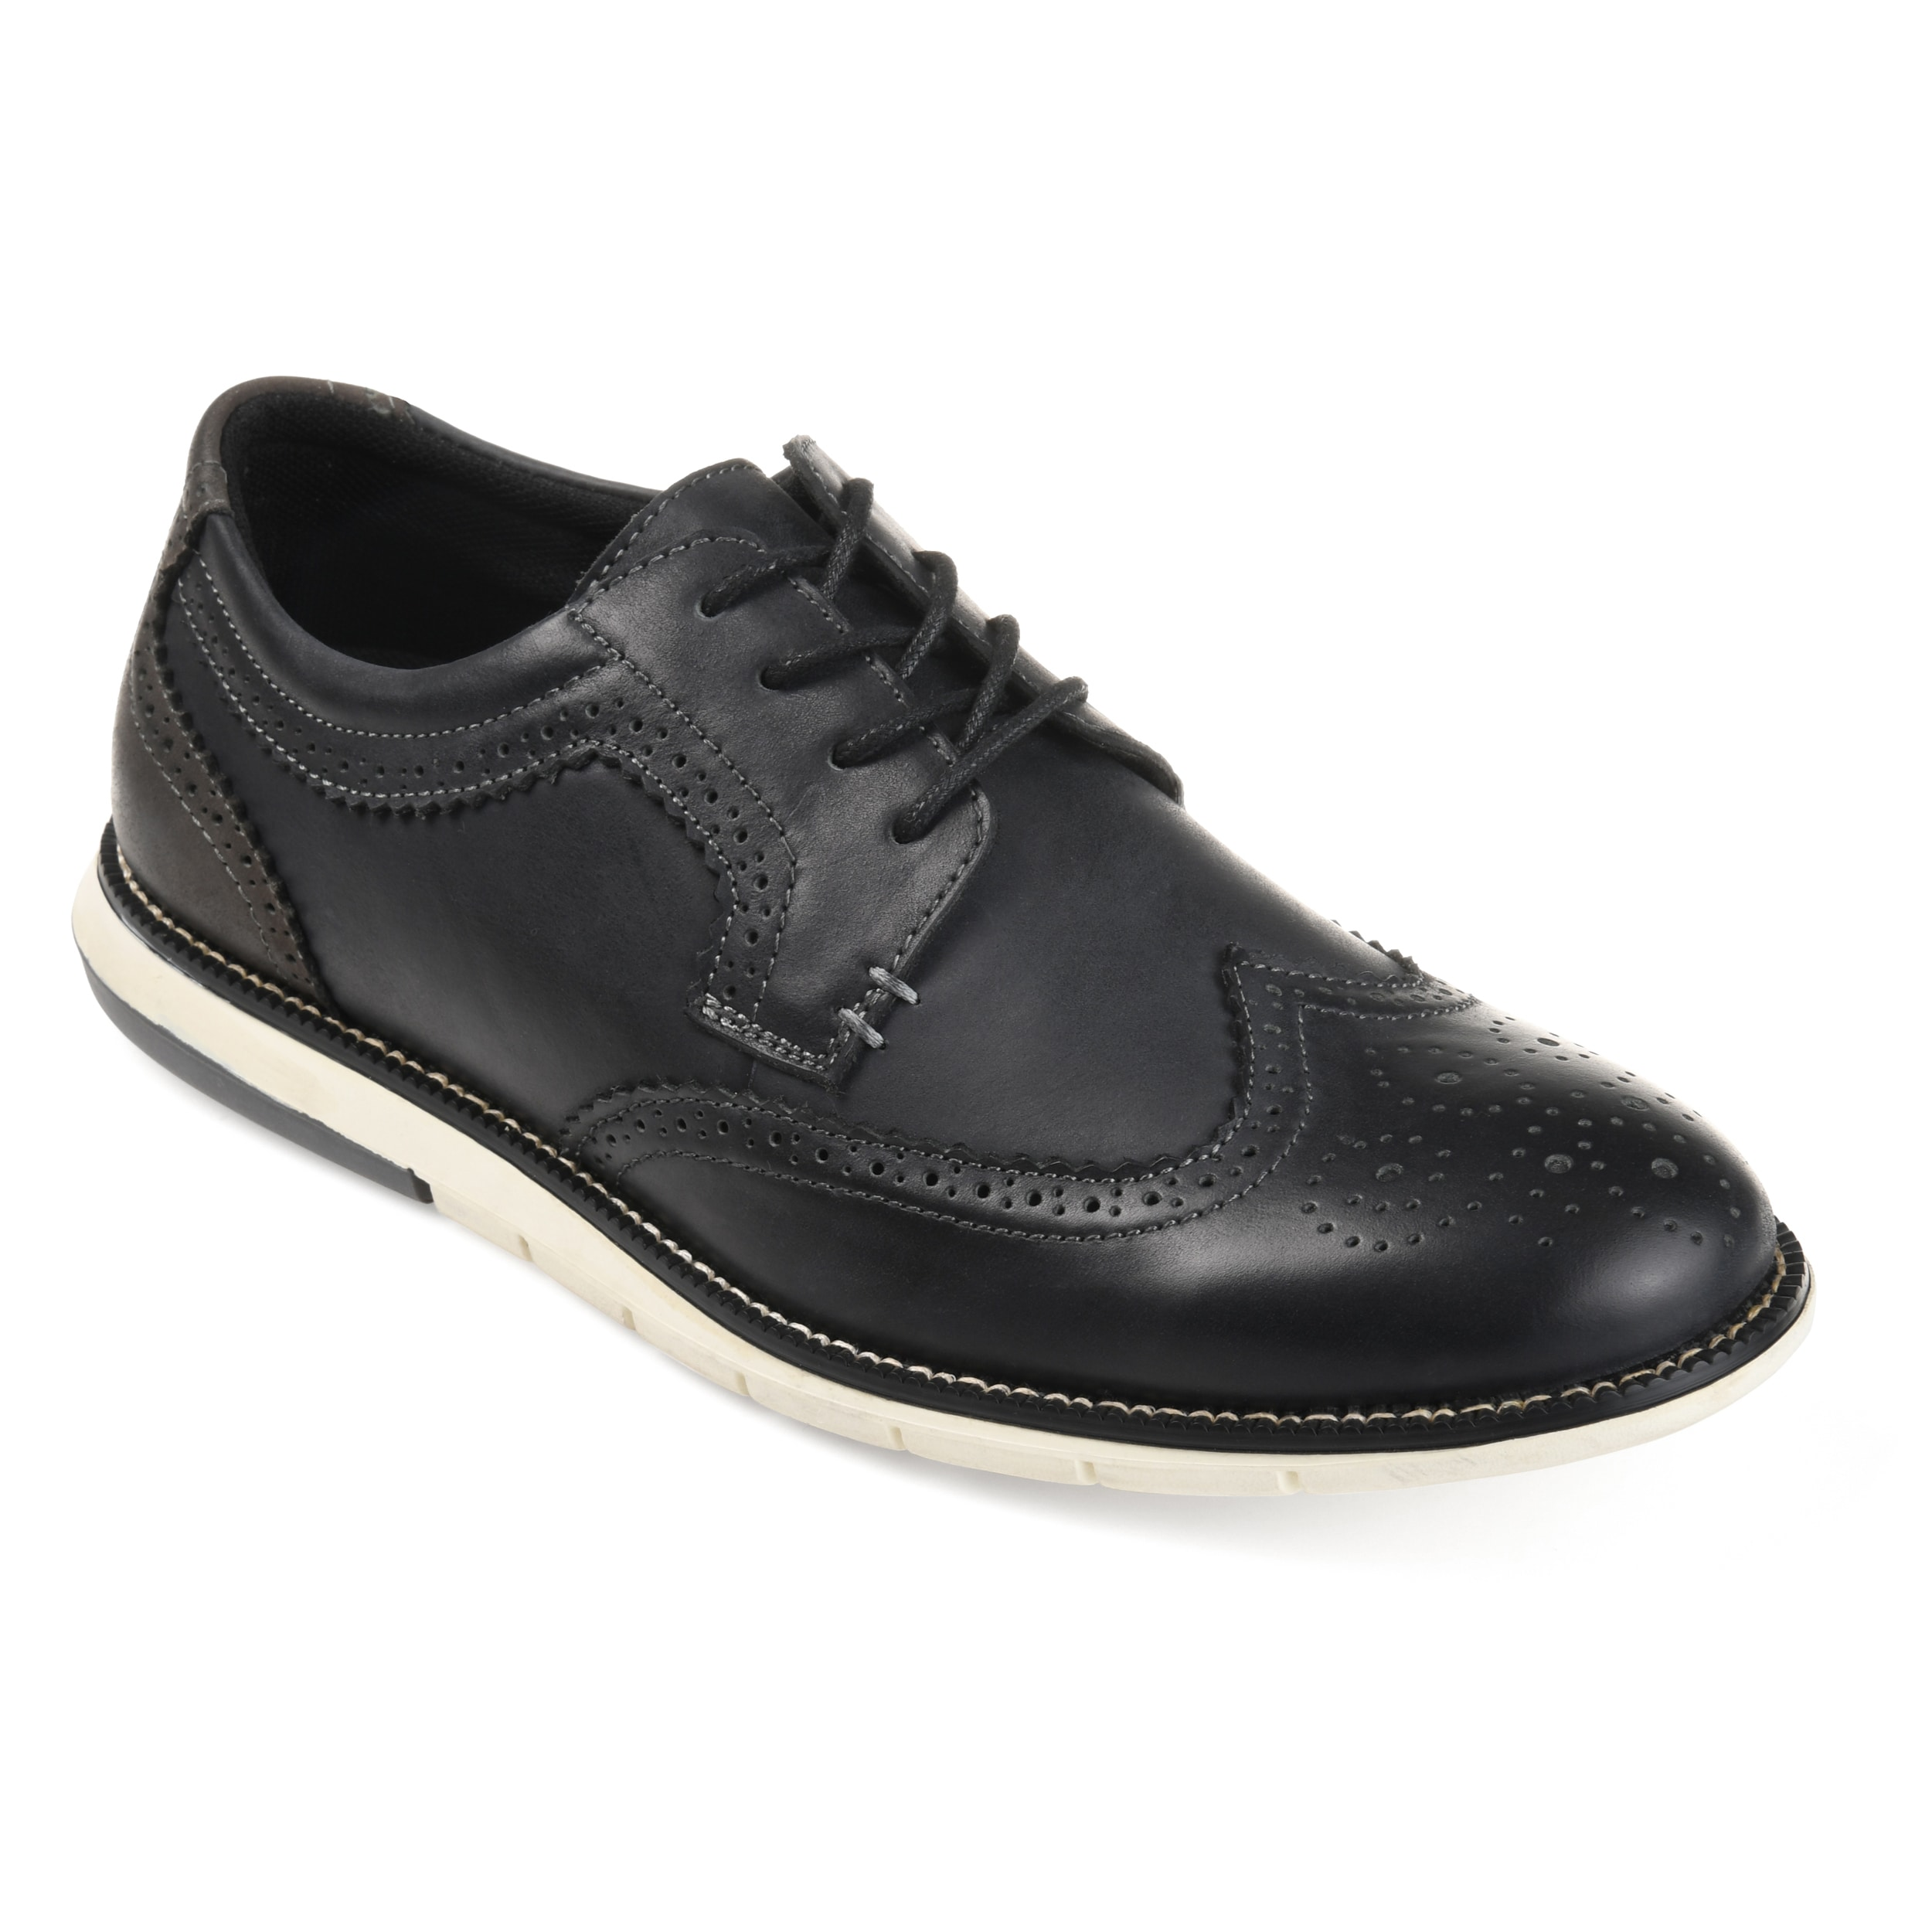 faa62ee6e16a Men s  Drake  Comfort-sole Genuine Leather Wingtip Brogue Dress Shoes - On  Sale - Free Shipping Today - Overstock - 20256762